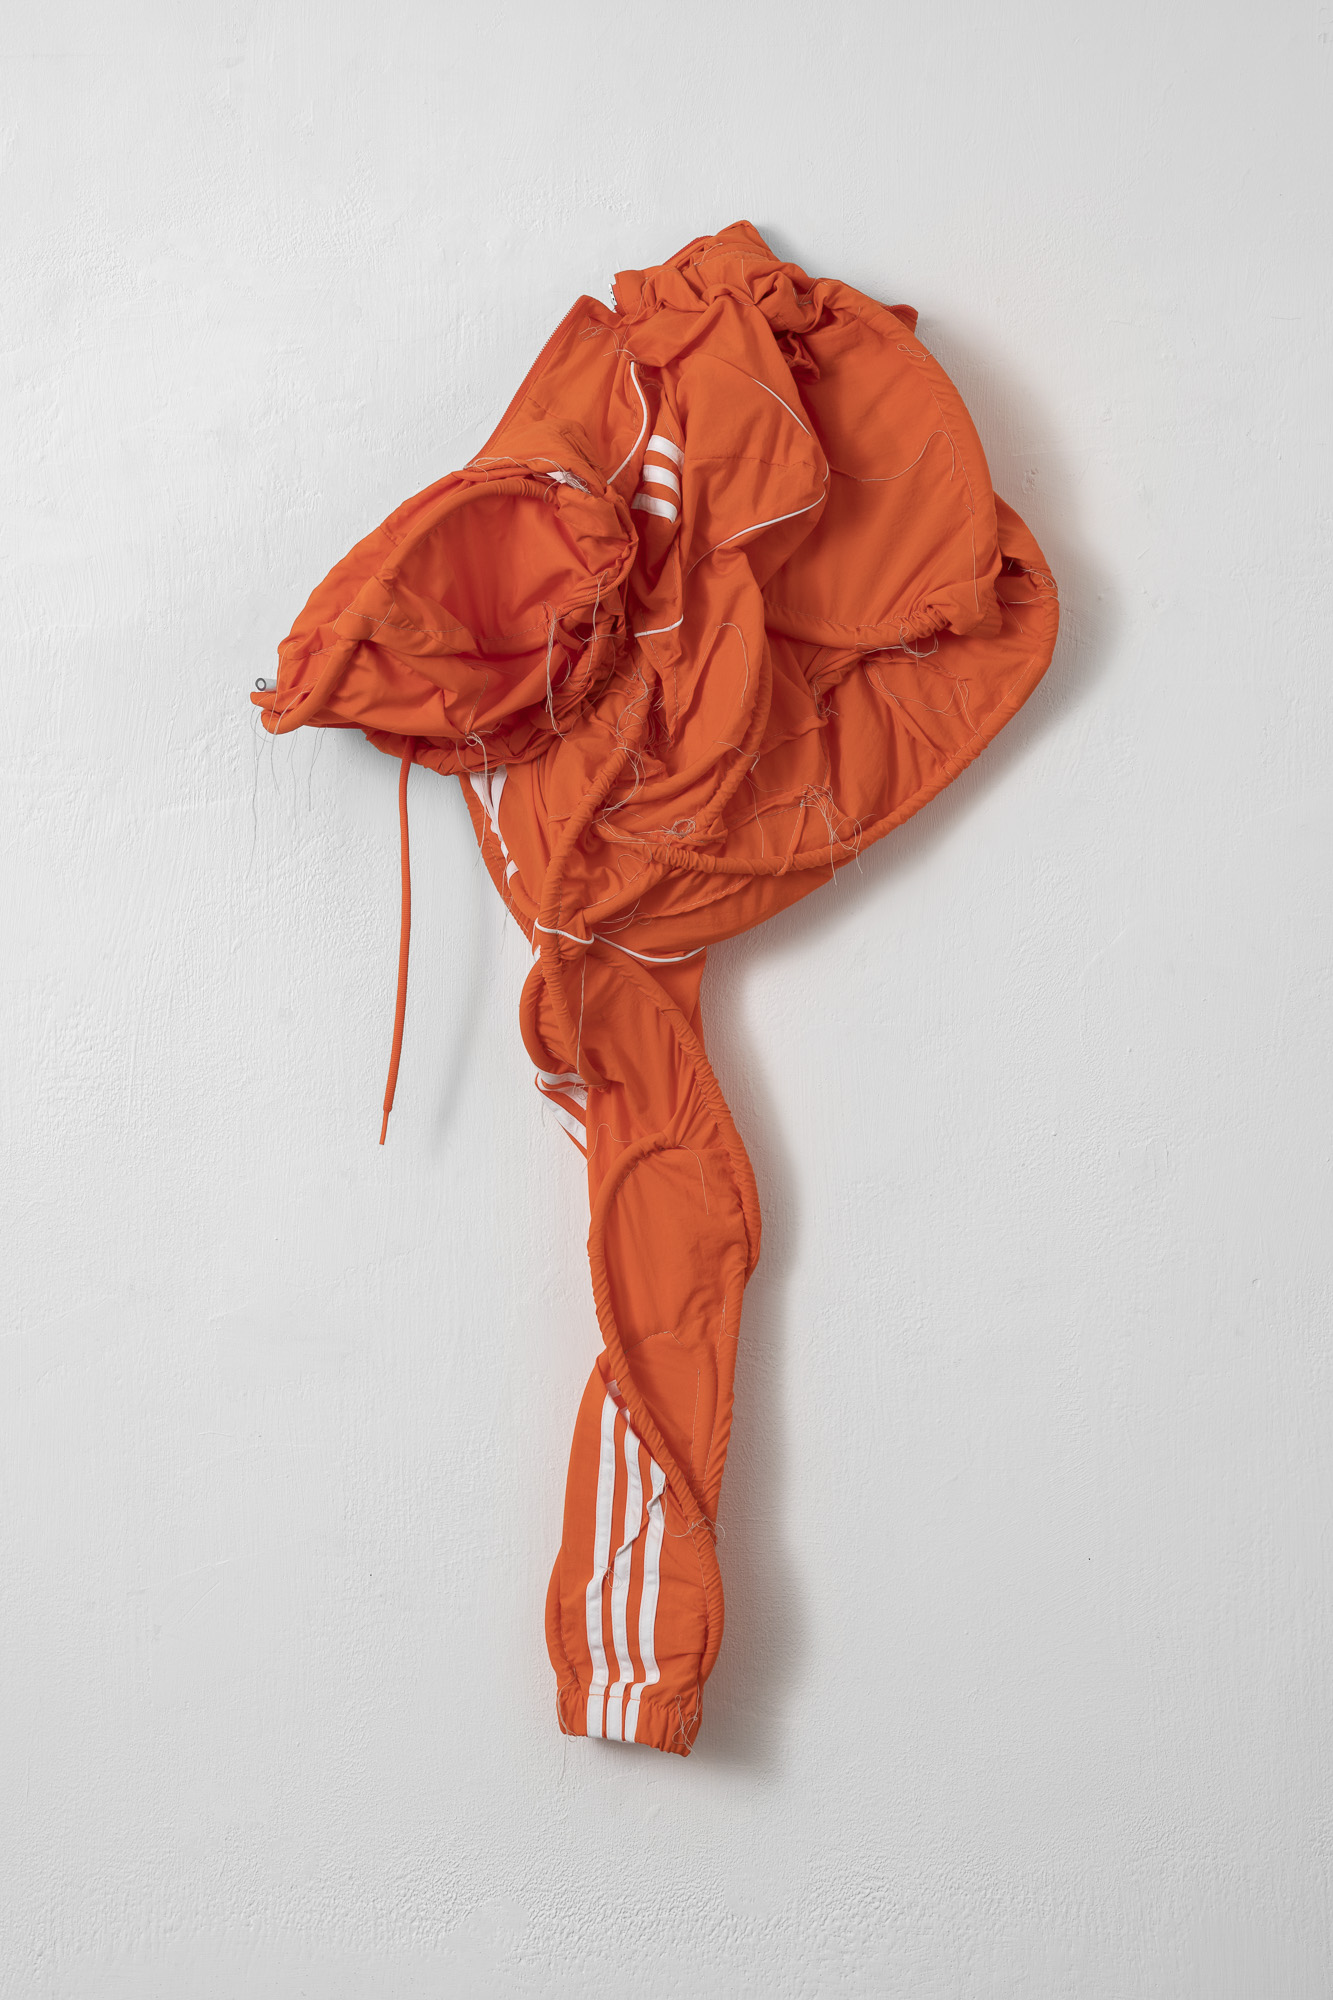 The Couple (I), 2019, jacket, thread, plastic